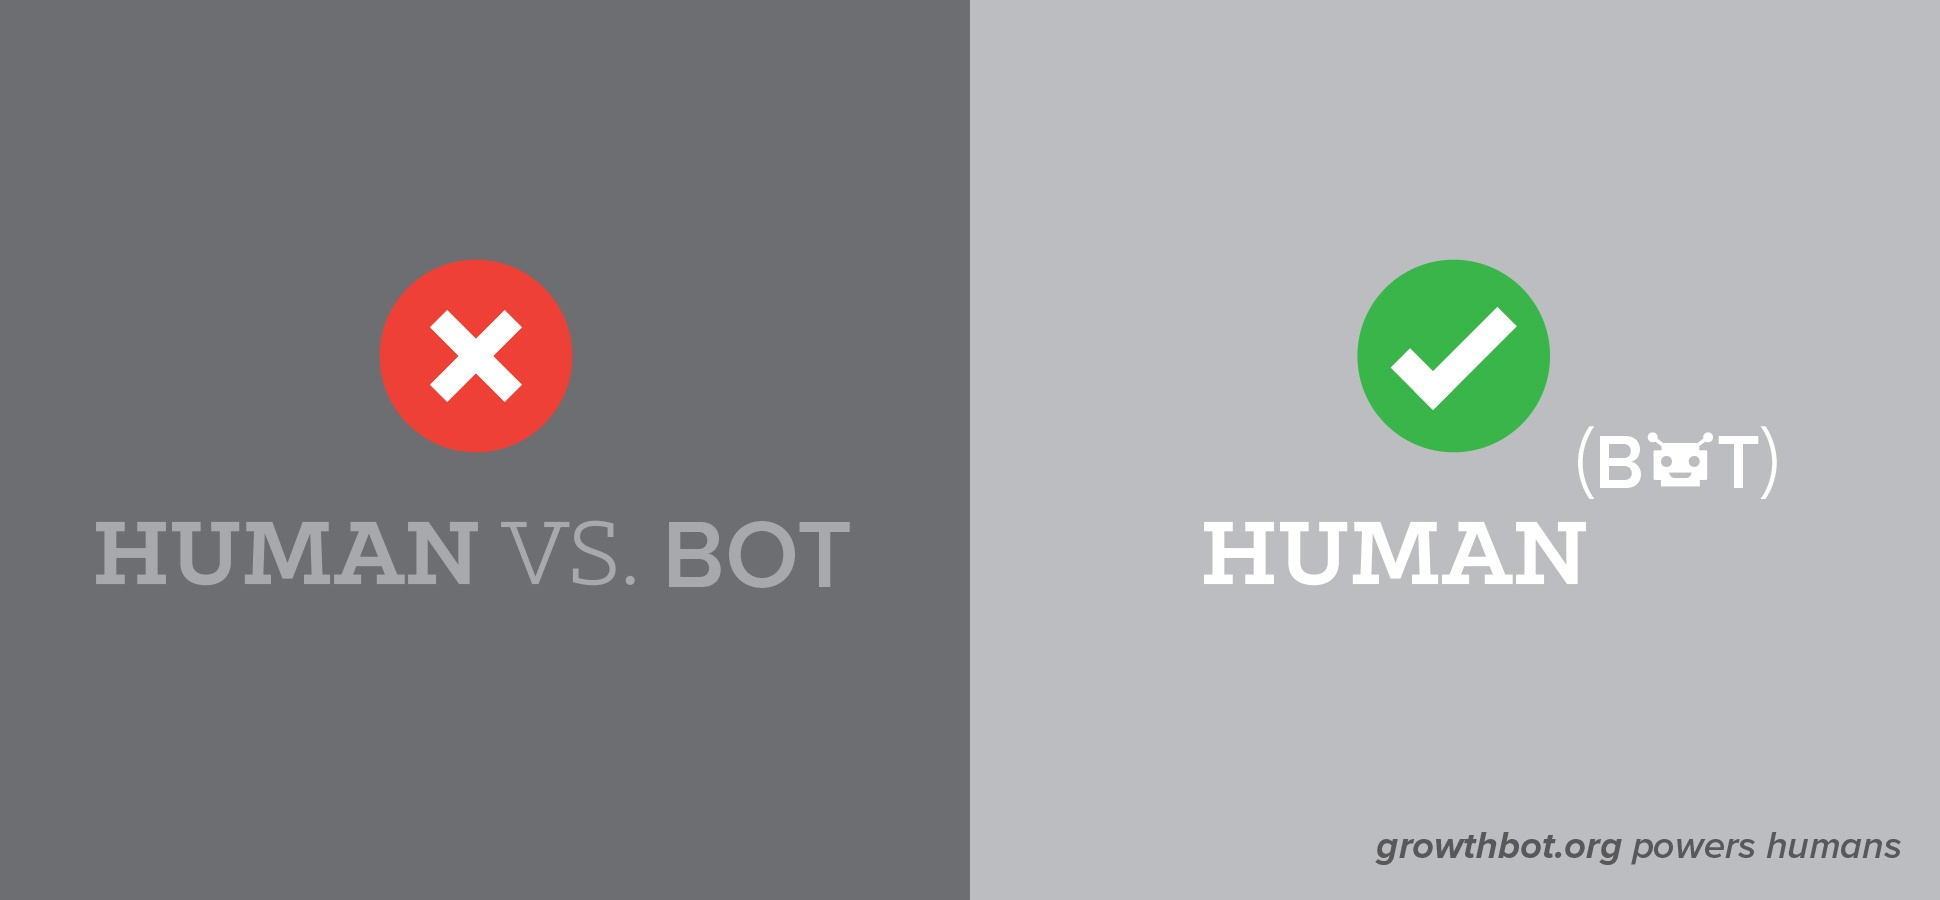 Why This New Chatbot Is More Likely To Get You Promoted Than Fired